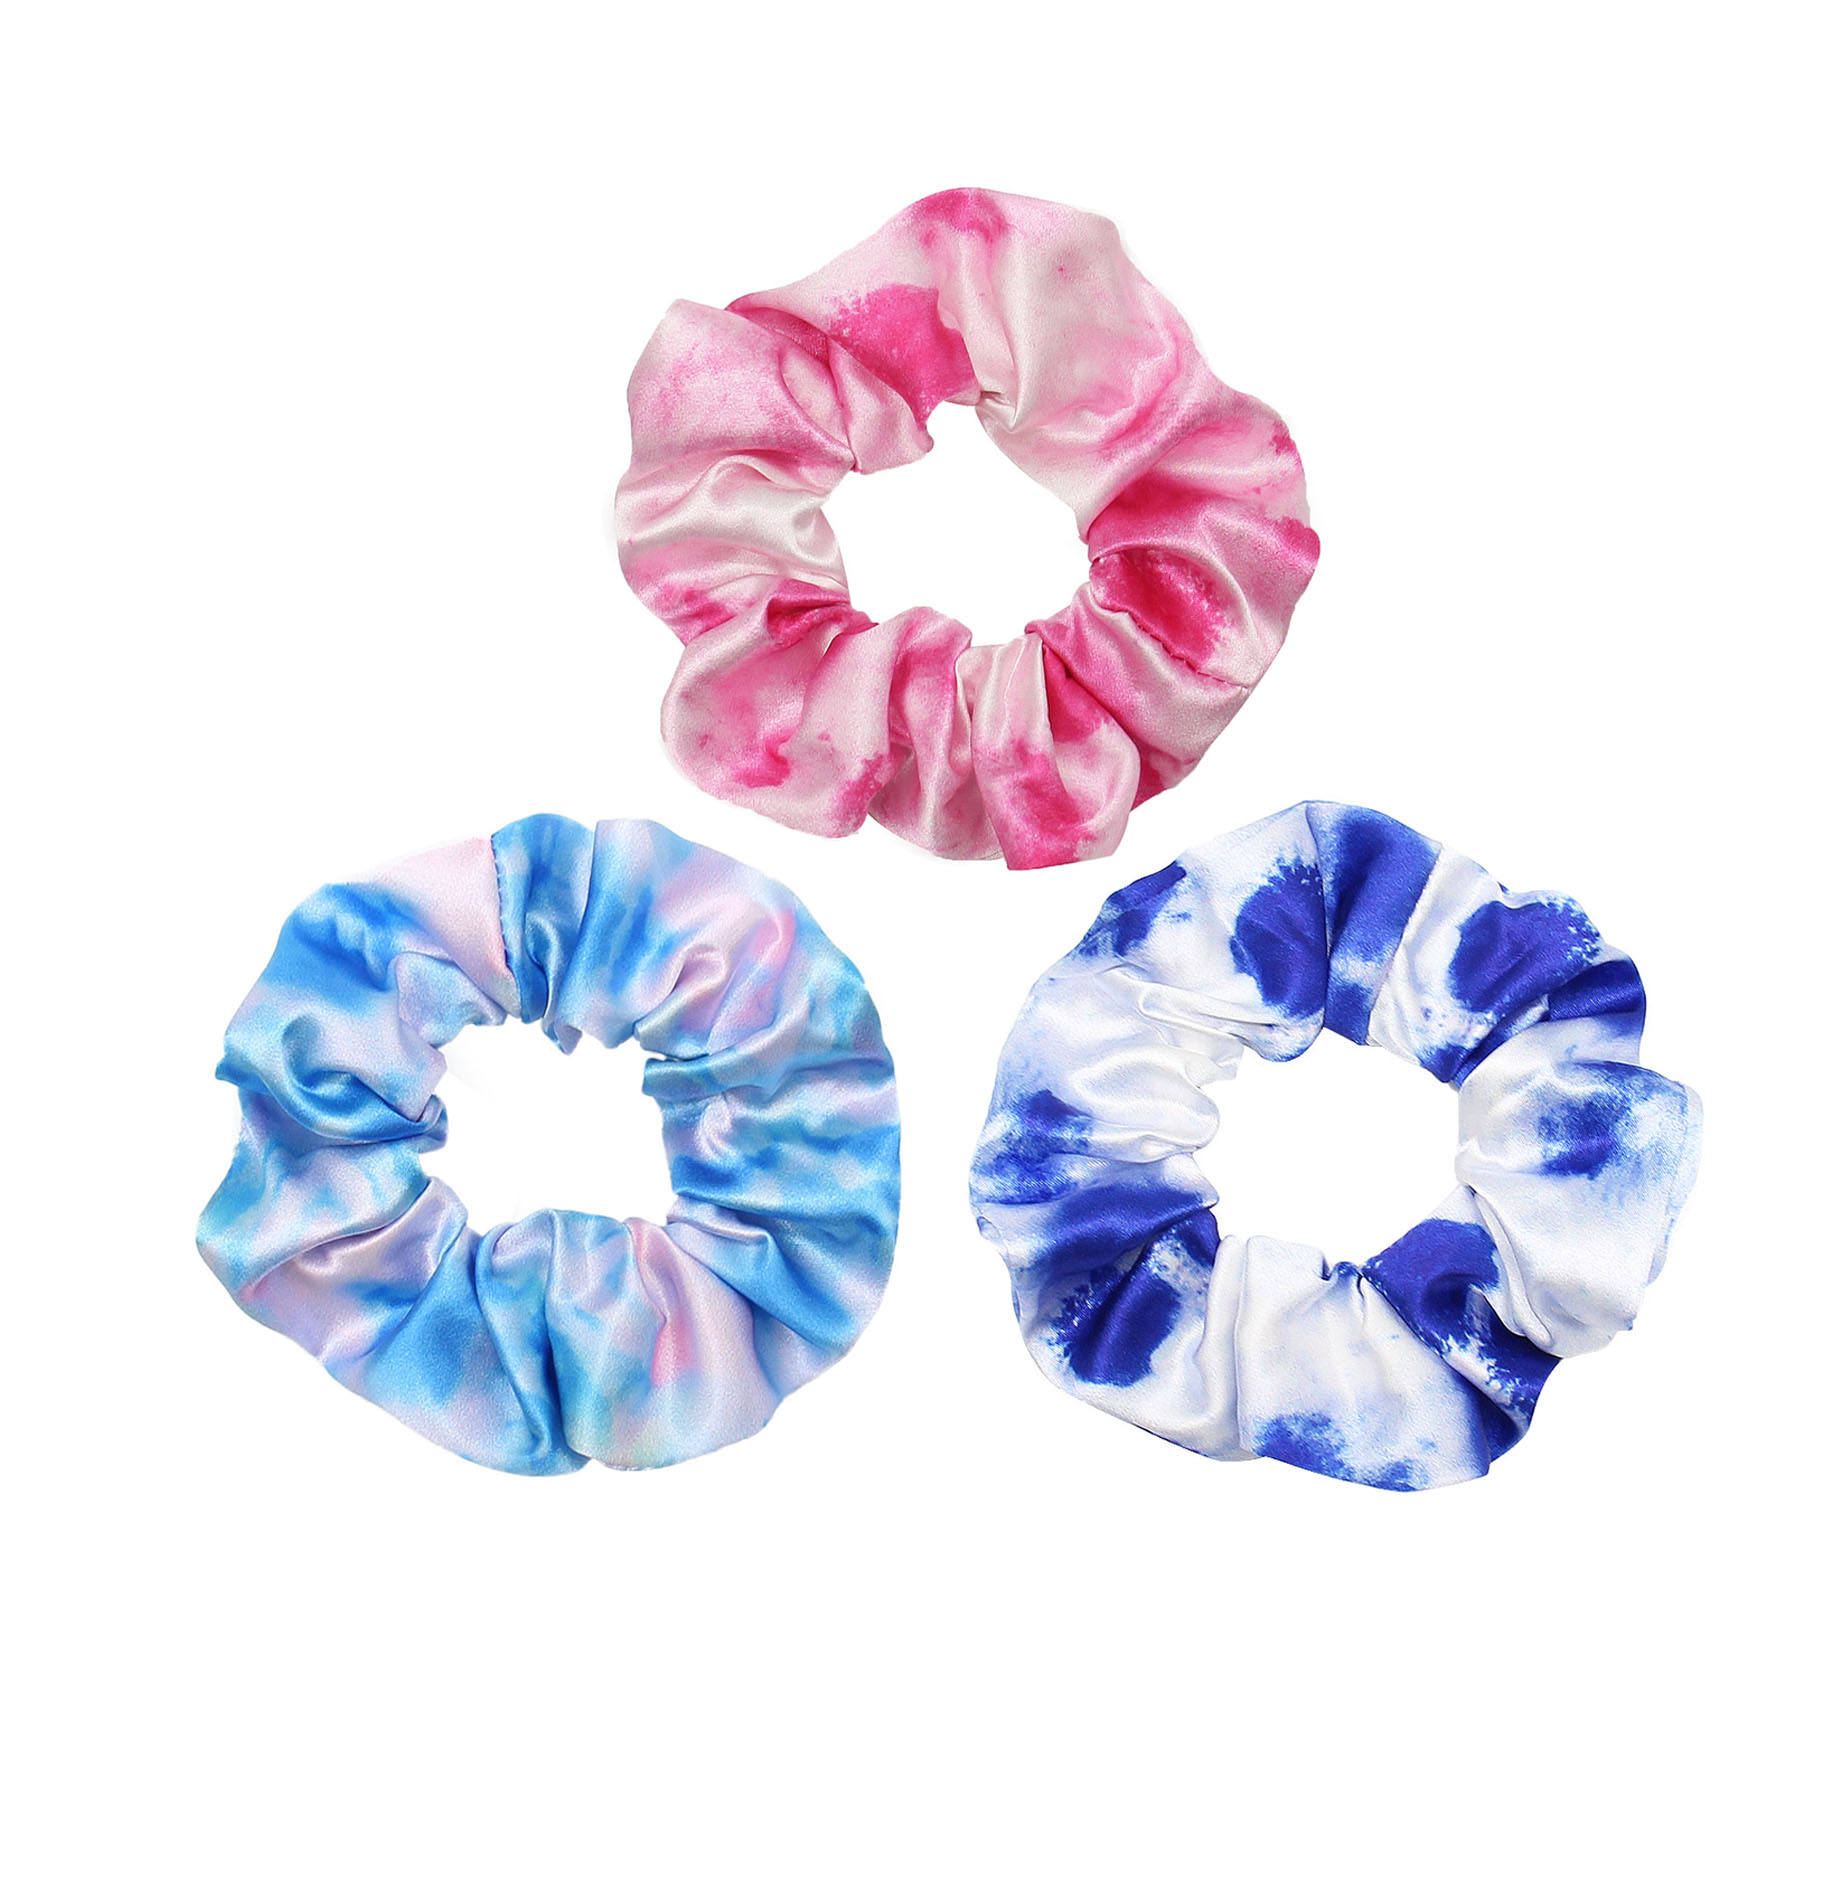 New style tie dye elastic hair band soft silk satin scrunchy hair ties for women and girls